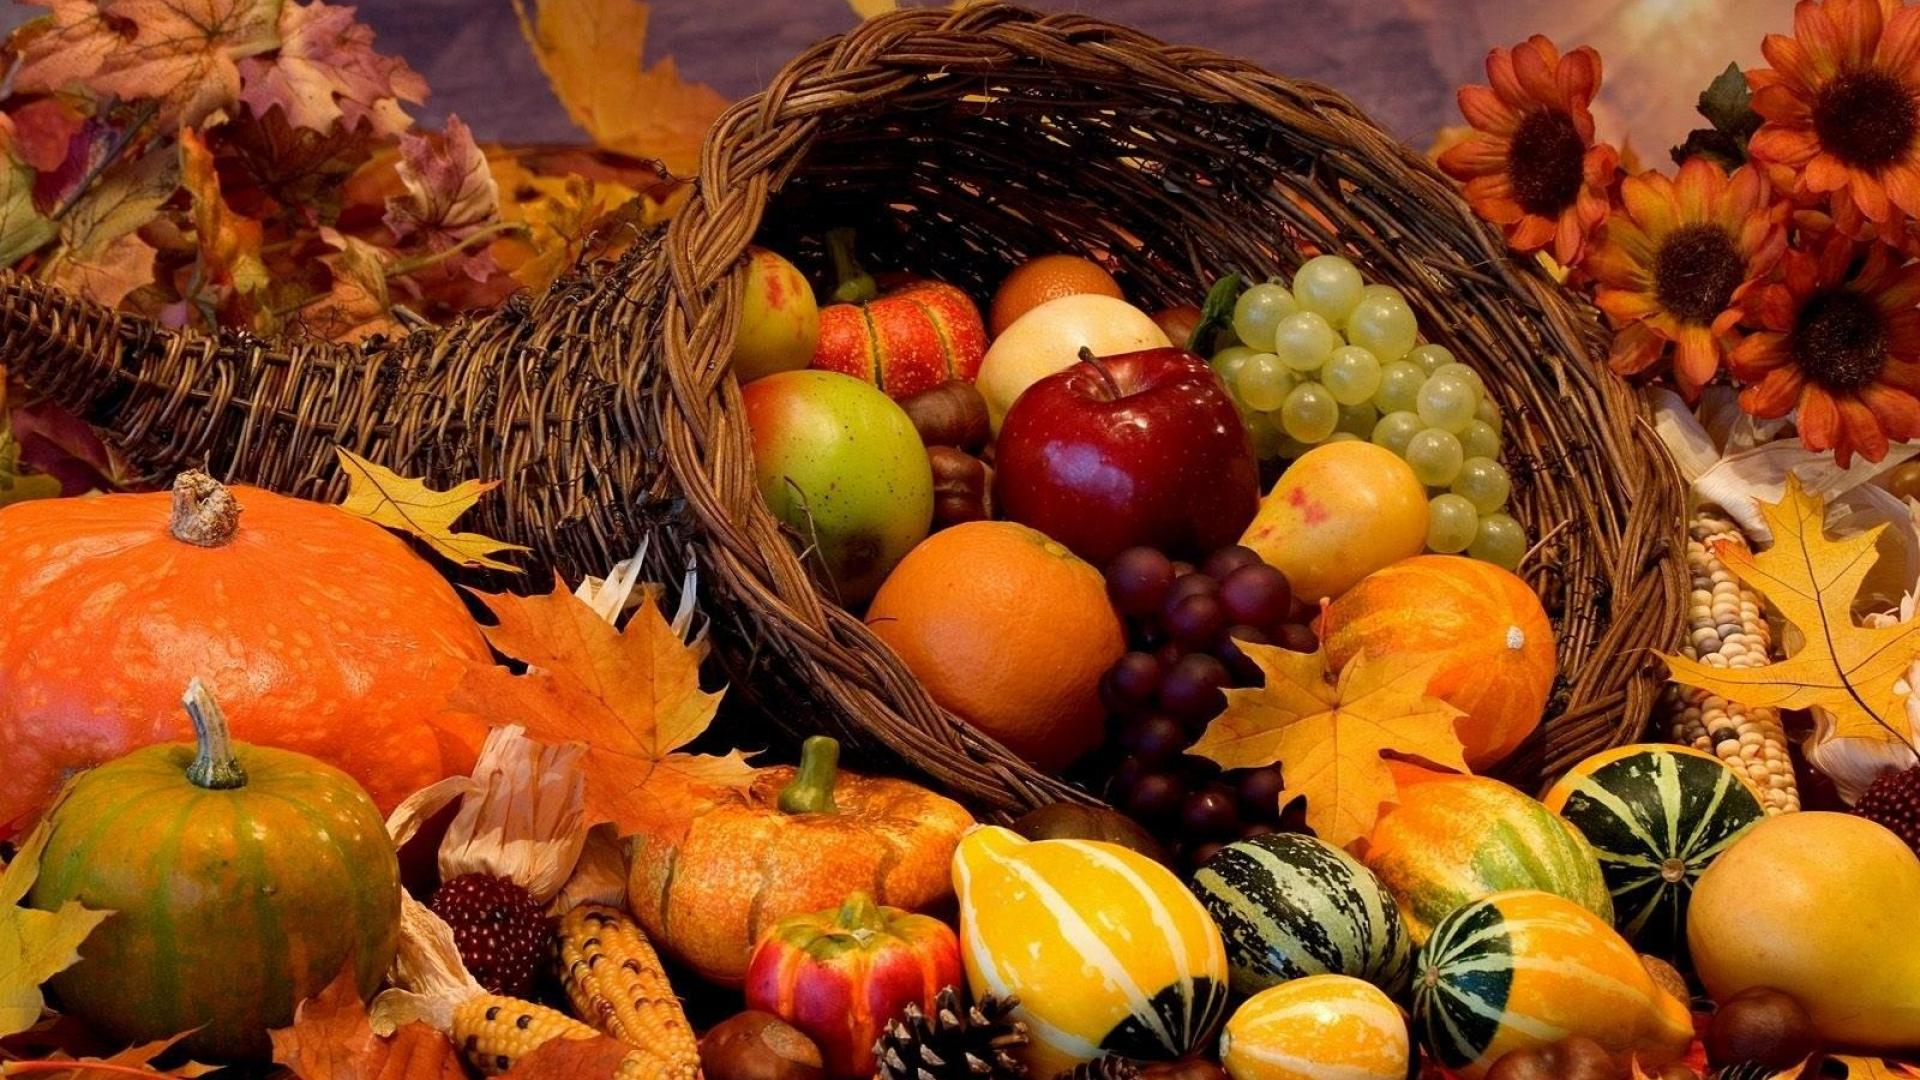 Autumn Harvest Wallpaper Widescreen - wallpaper